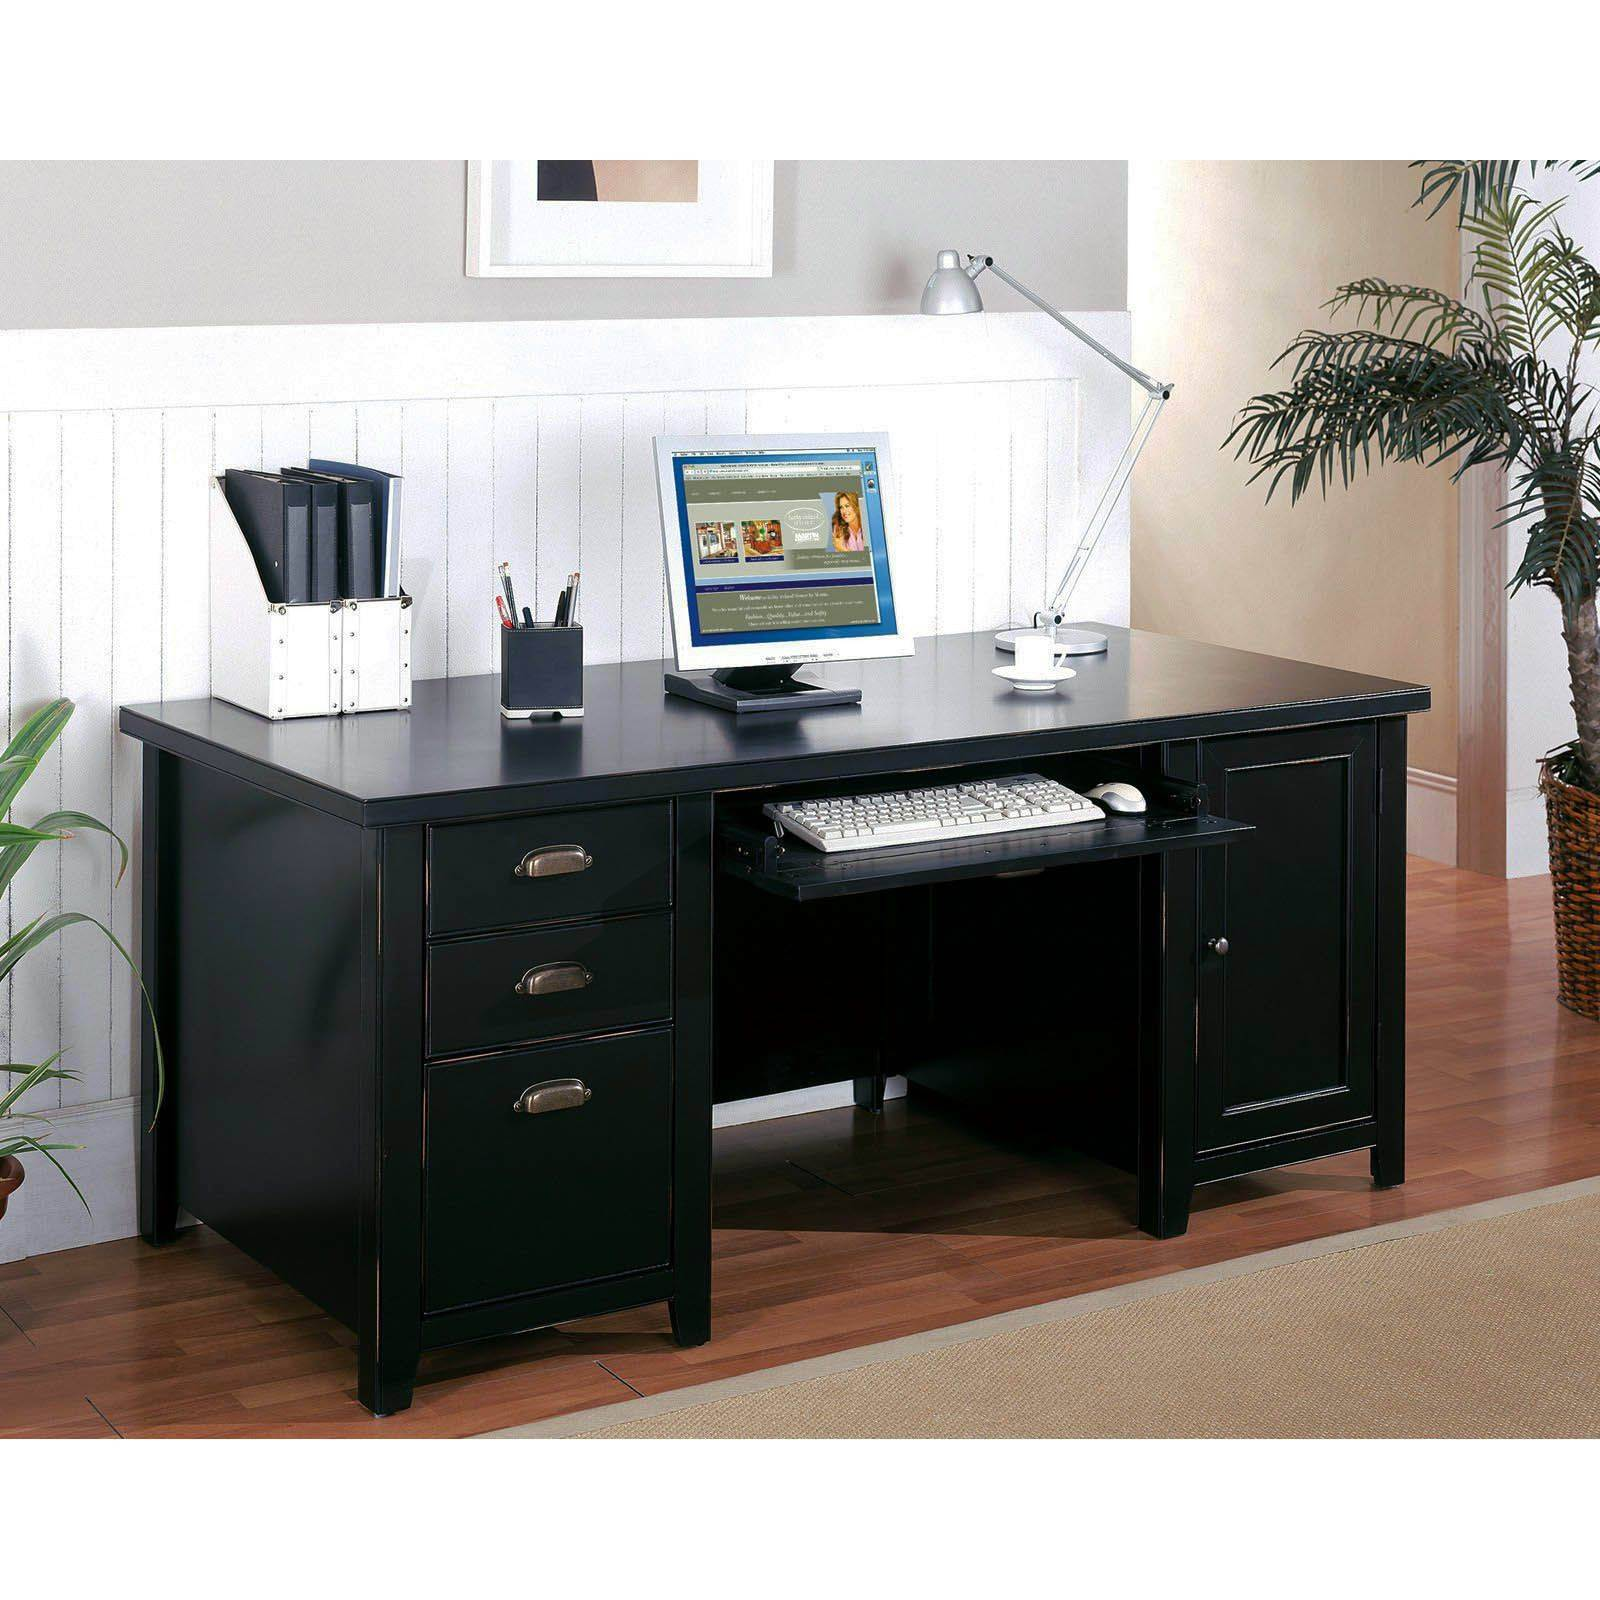 Beautiful Desks Luxury Trendy Black Puter Desk with Printer Storage that Look